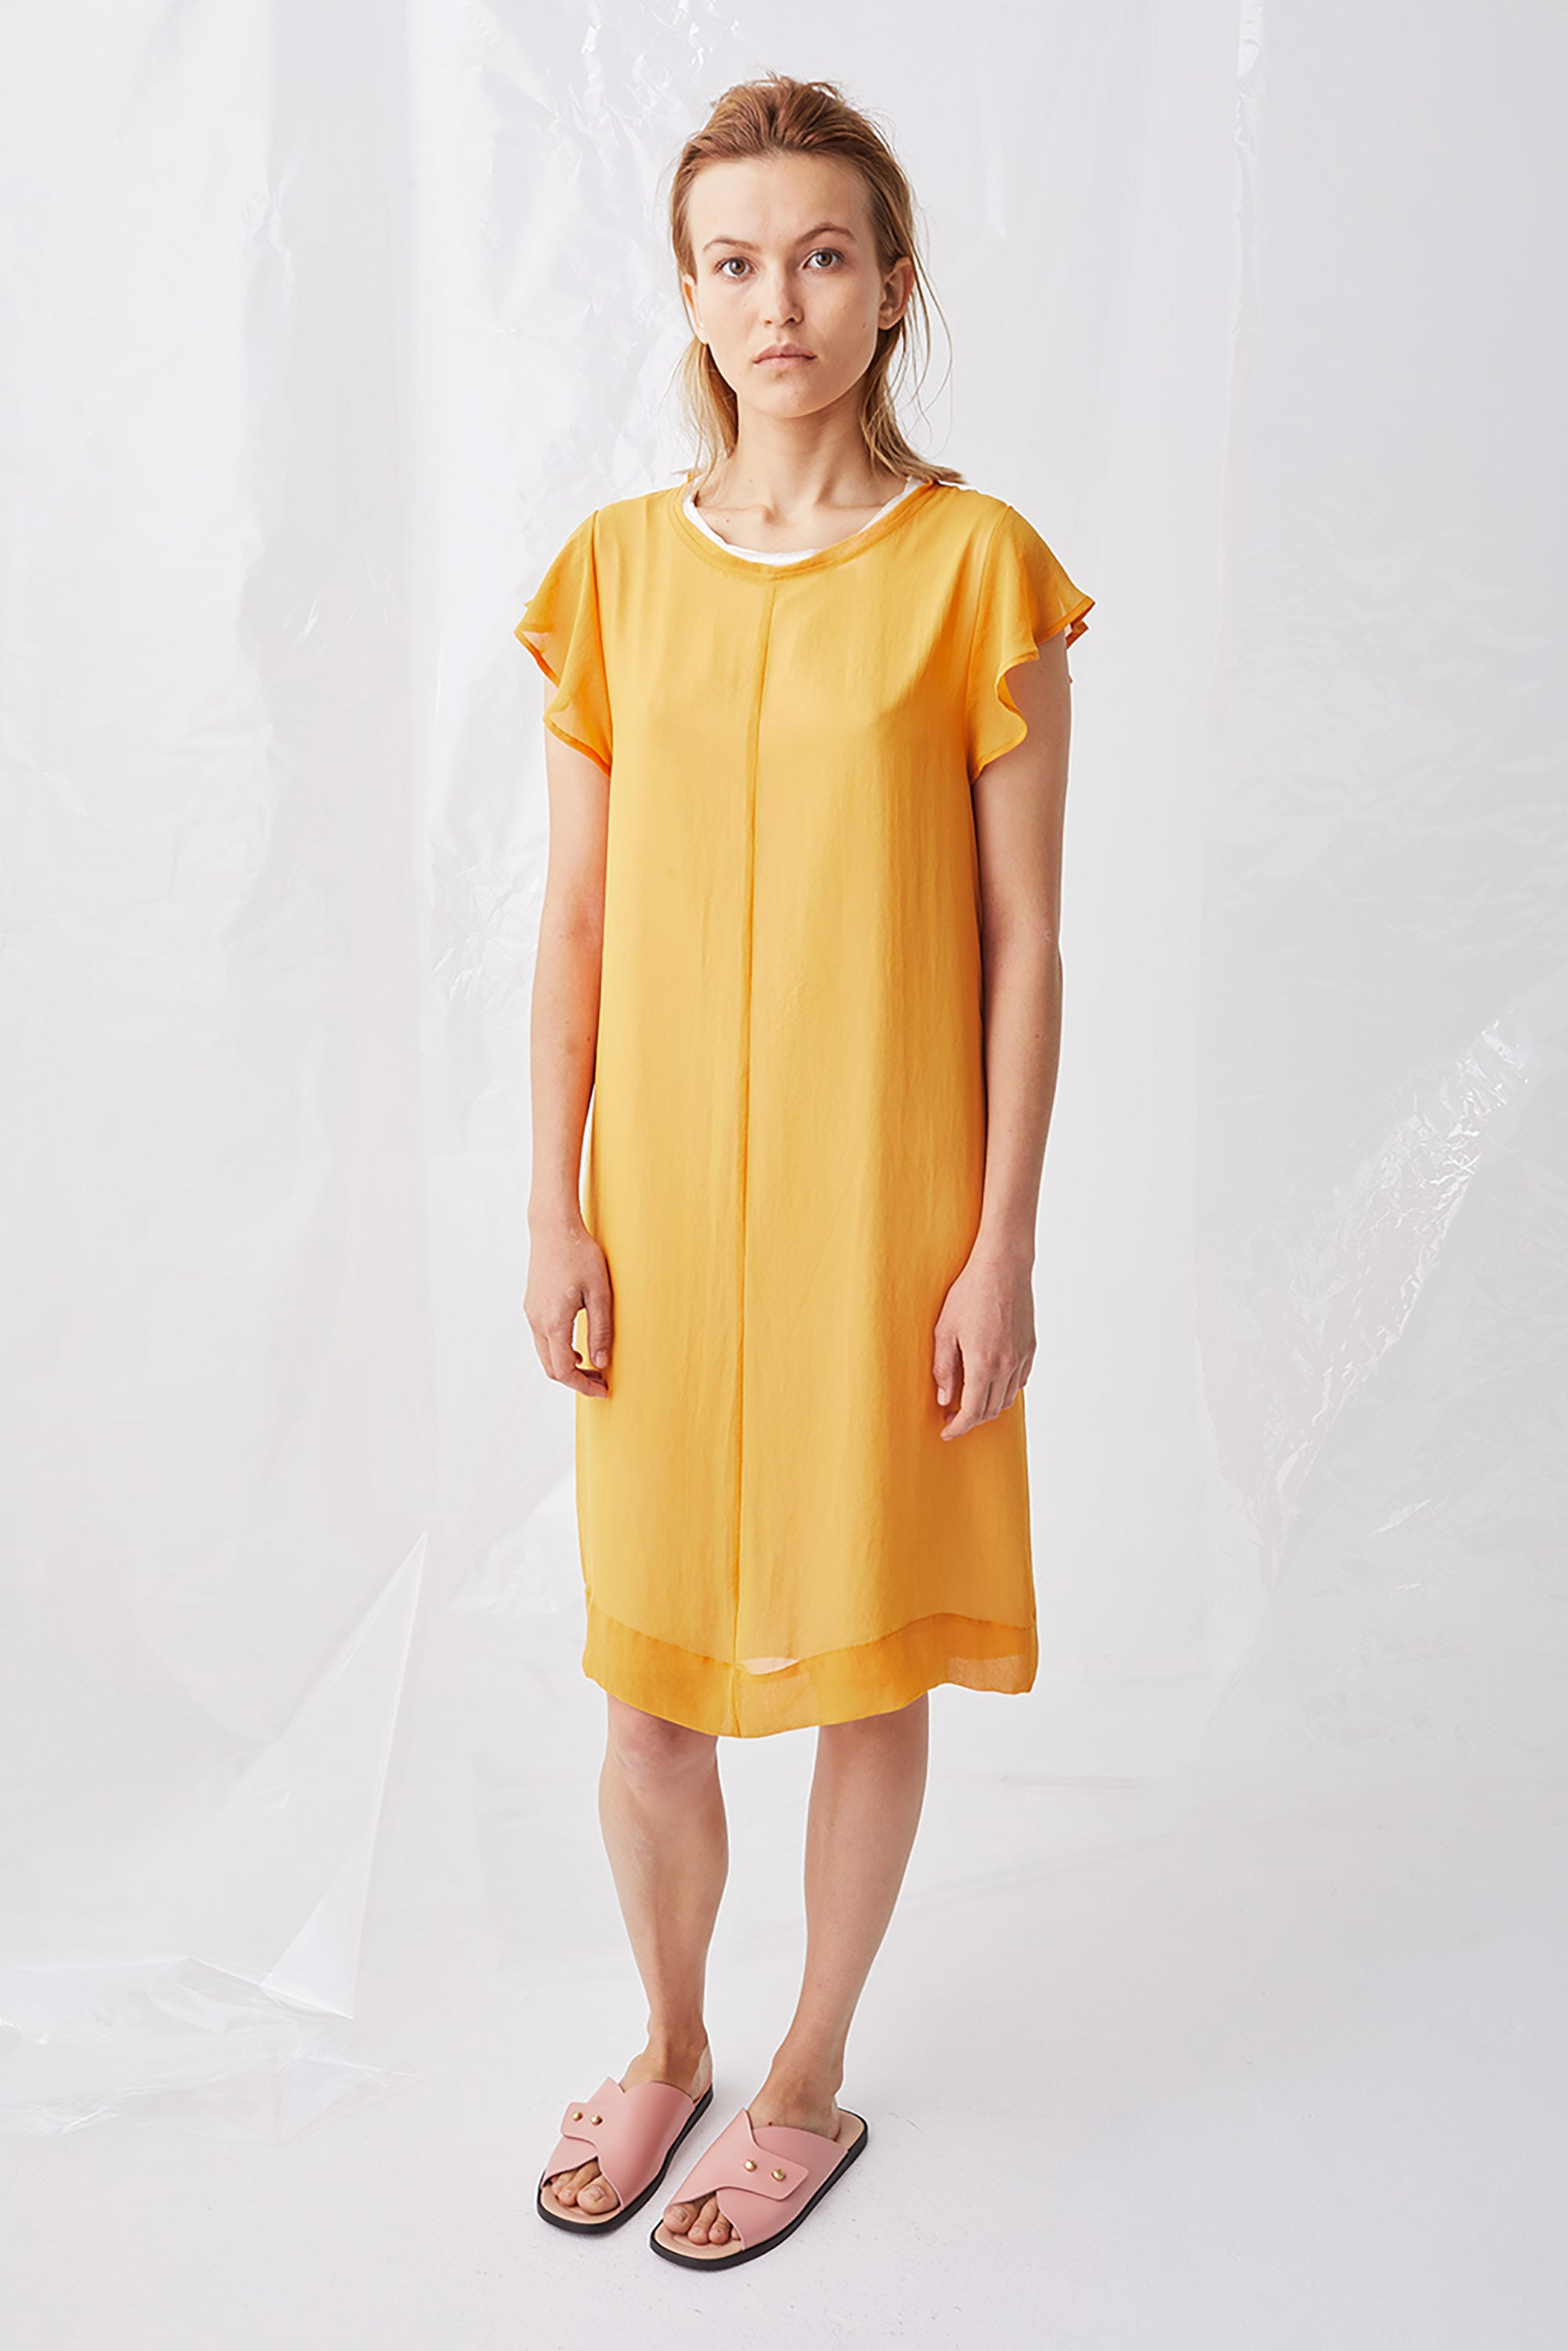 Ricochet NZ Fashion Designer Clothing Boutique SS18 Nagano Dress Flute Sleeve Tango Chiffon Made in NZ